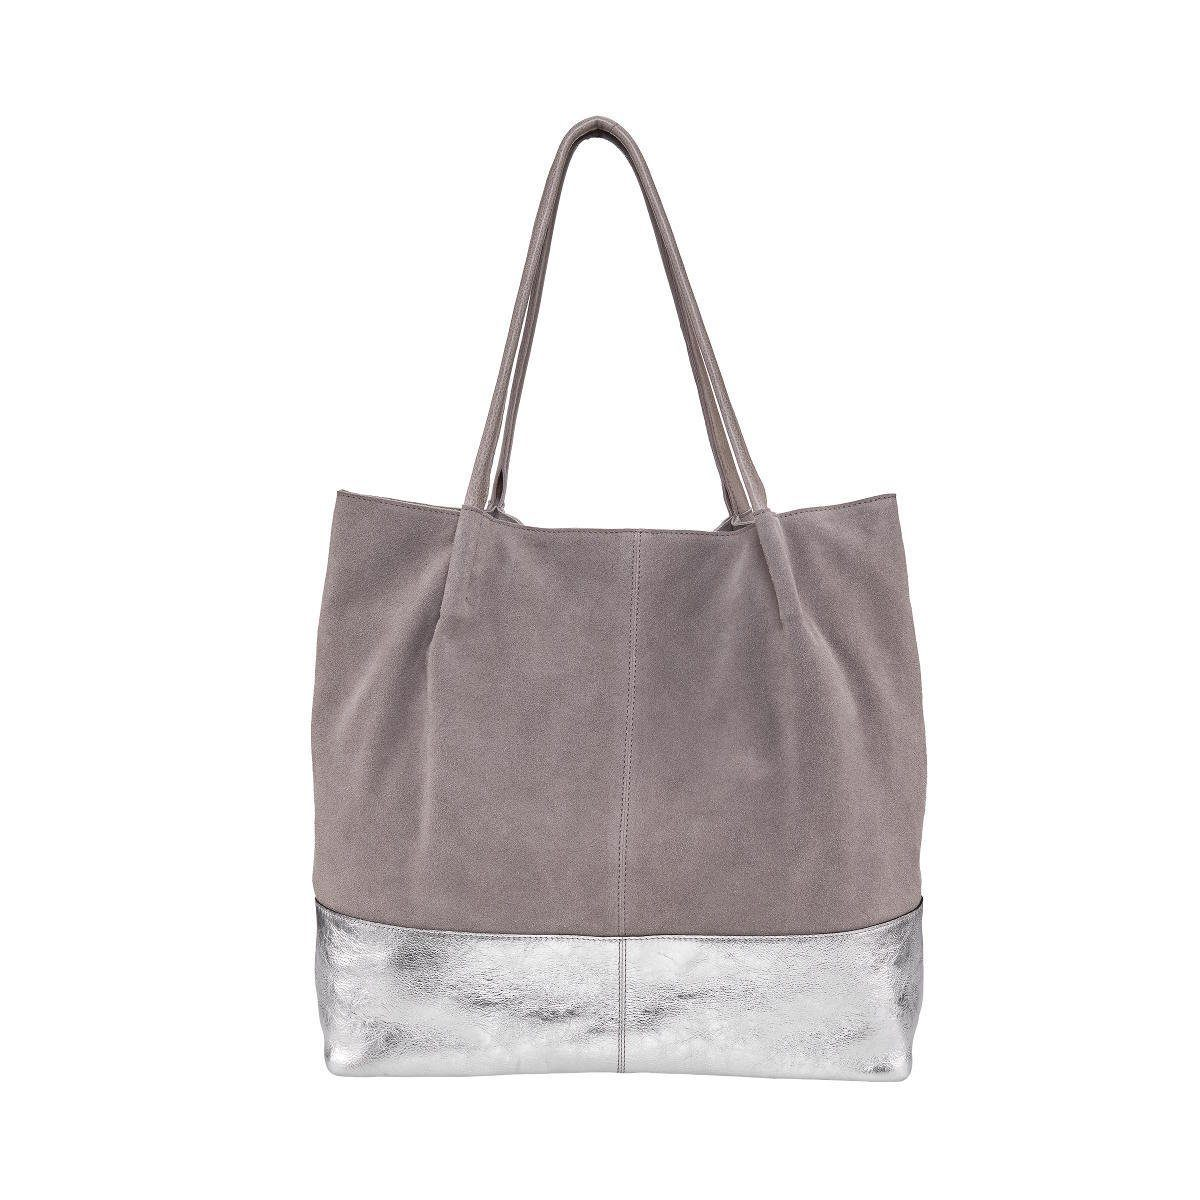 BUTLERS BOUTIQUE »Echtleder Shopper«